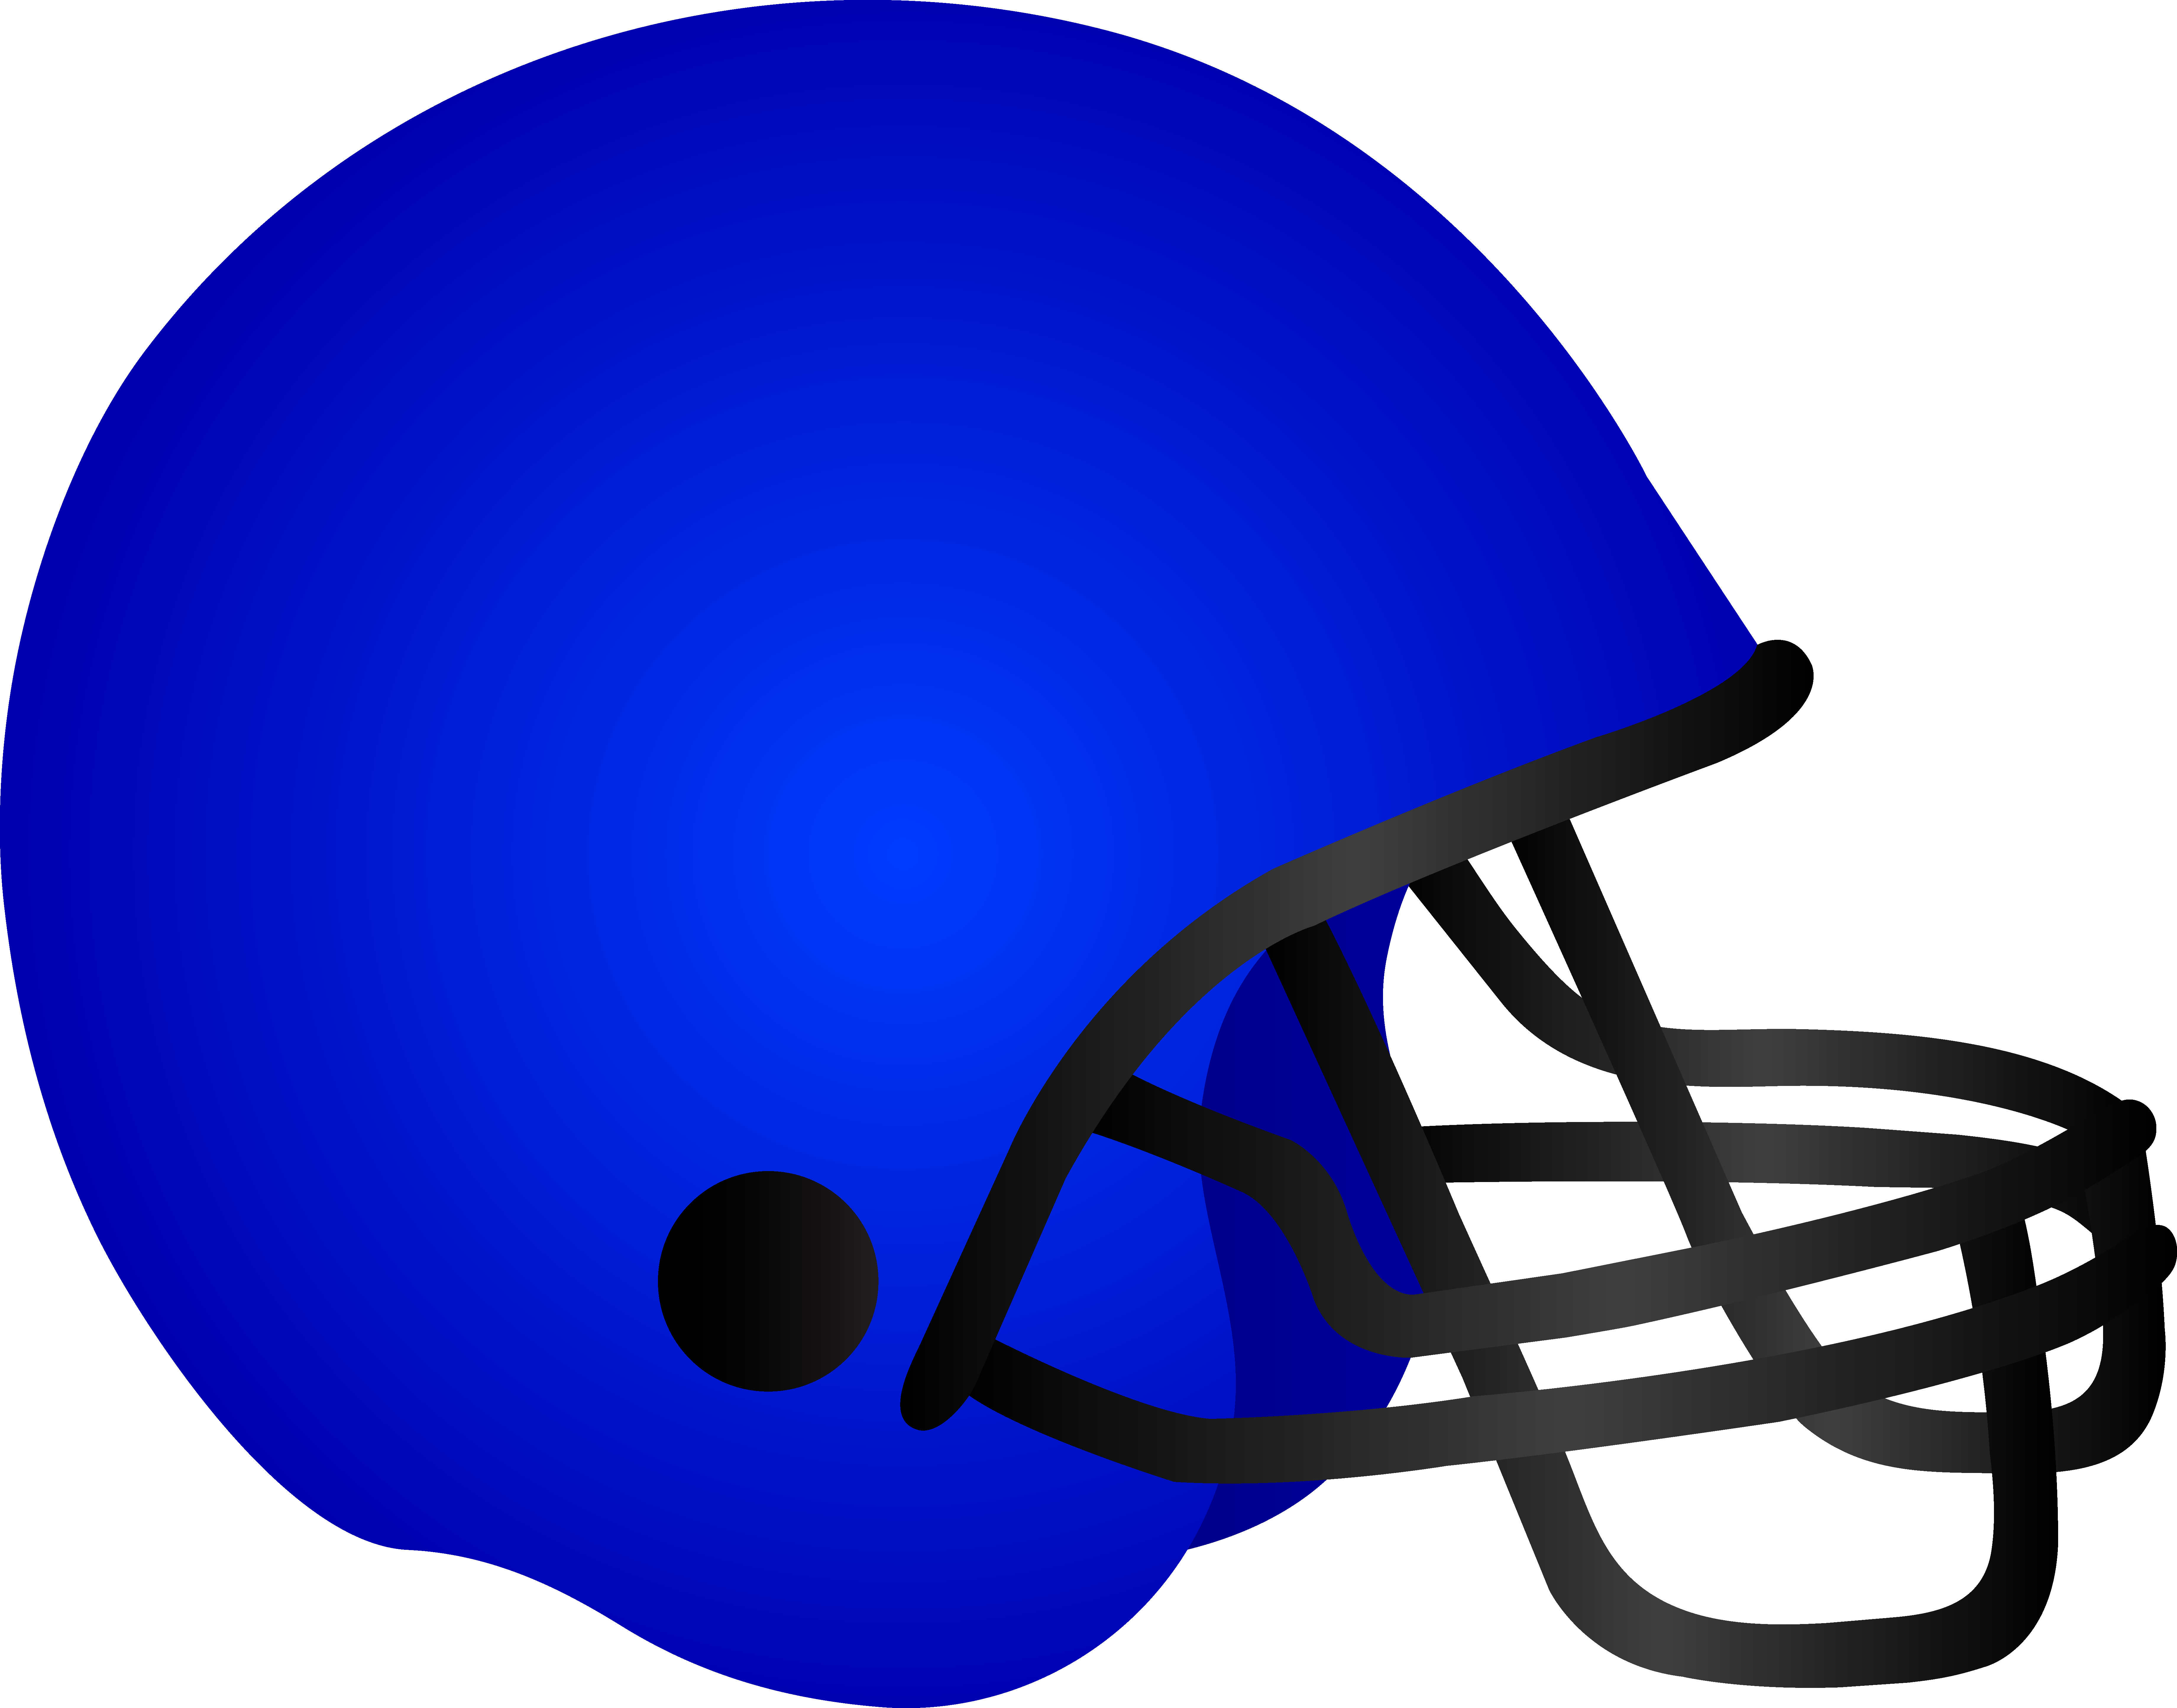 Free Football Helmet Clipart, Download Free Clip Art, Free.